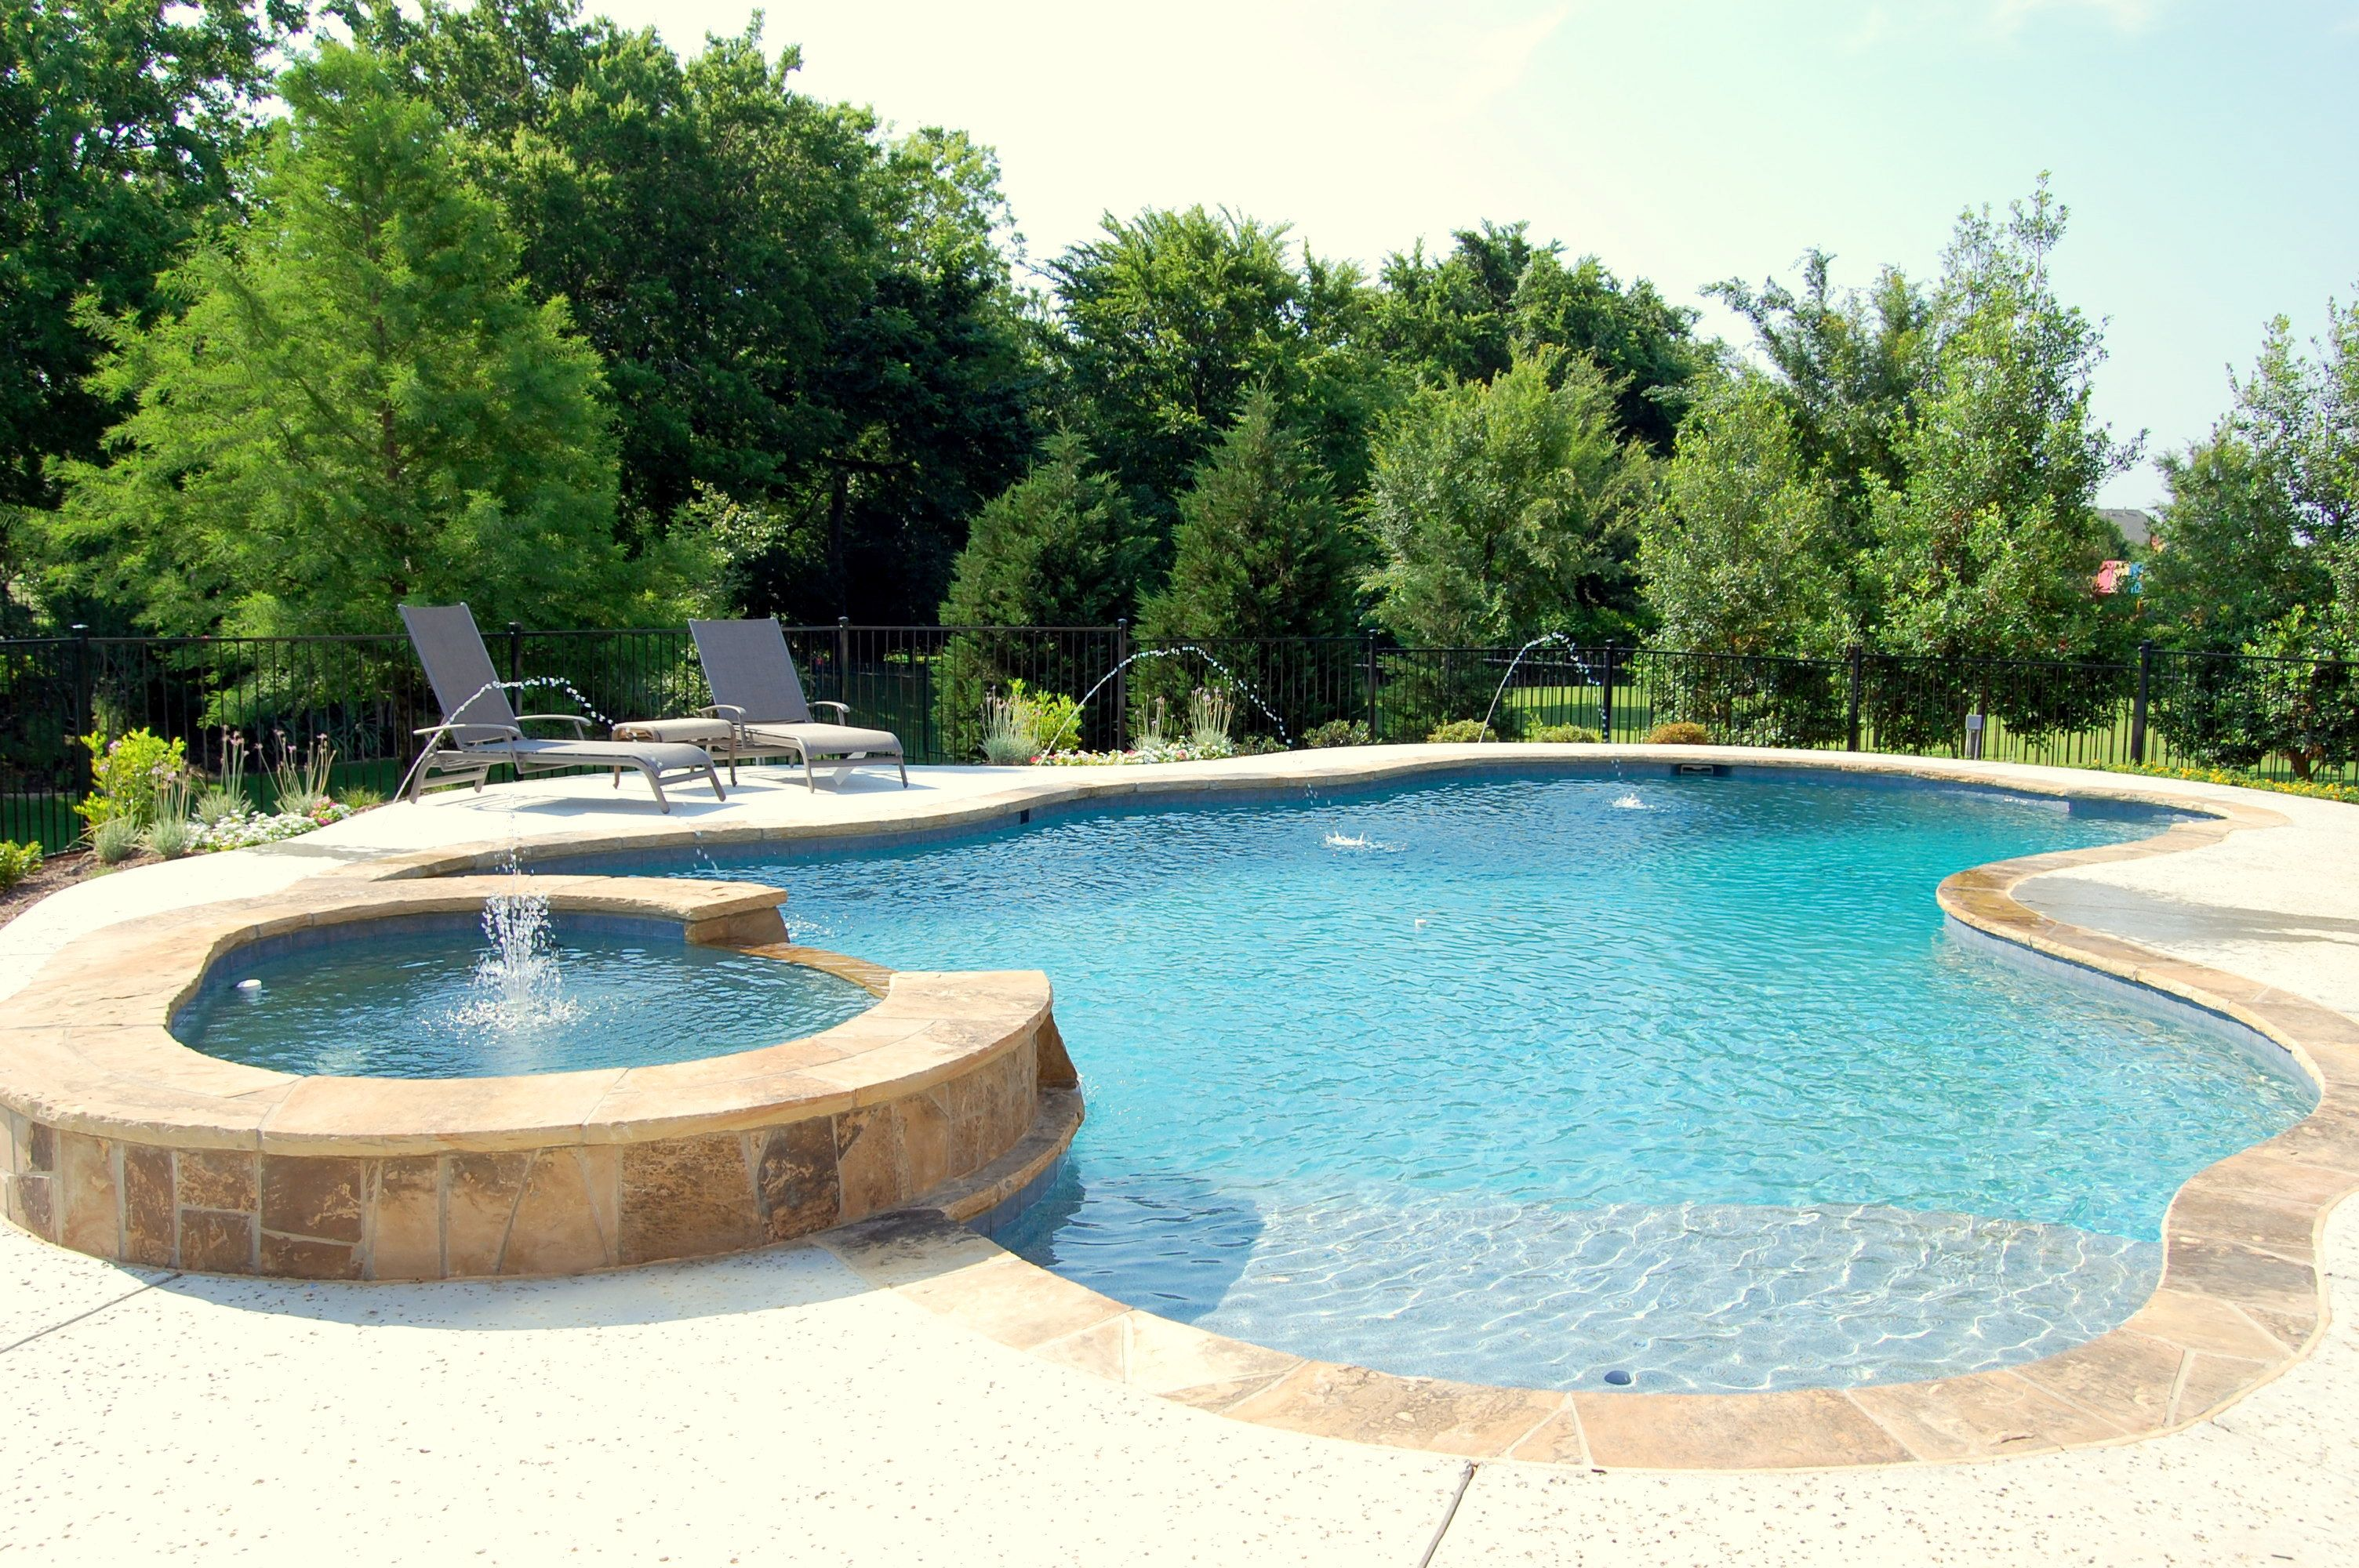 Pools images freeform swimming pool with spa southlake for Pool design okc